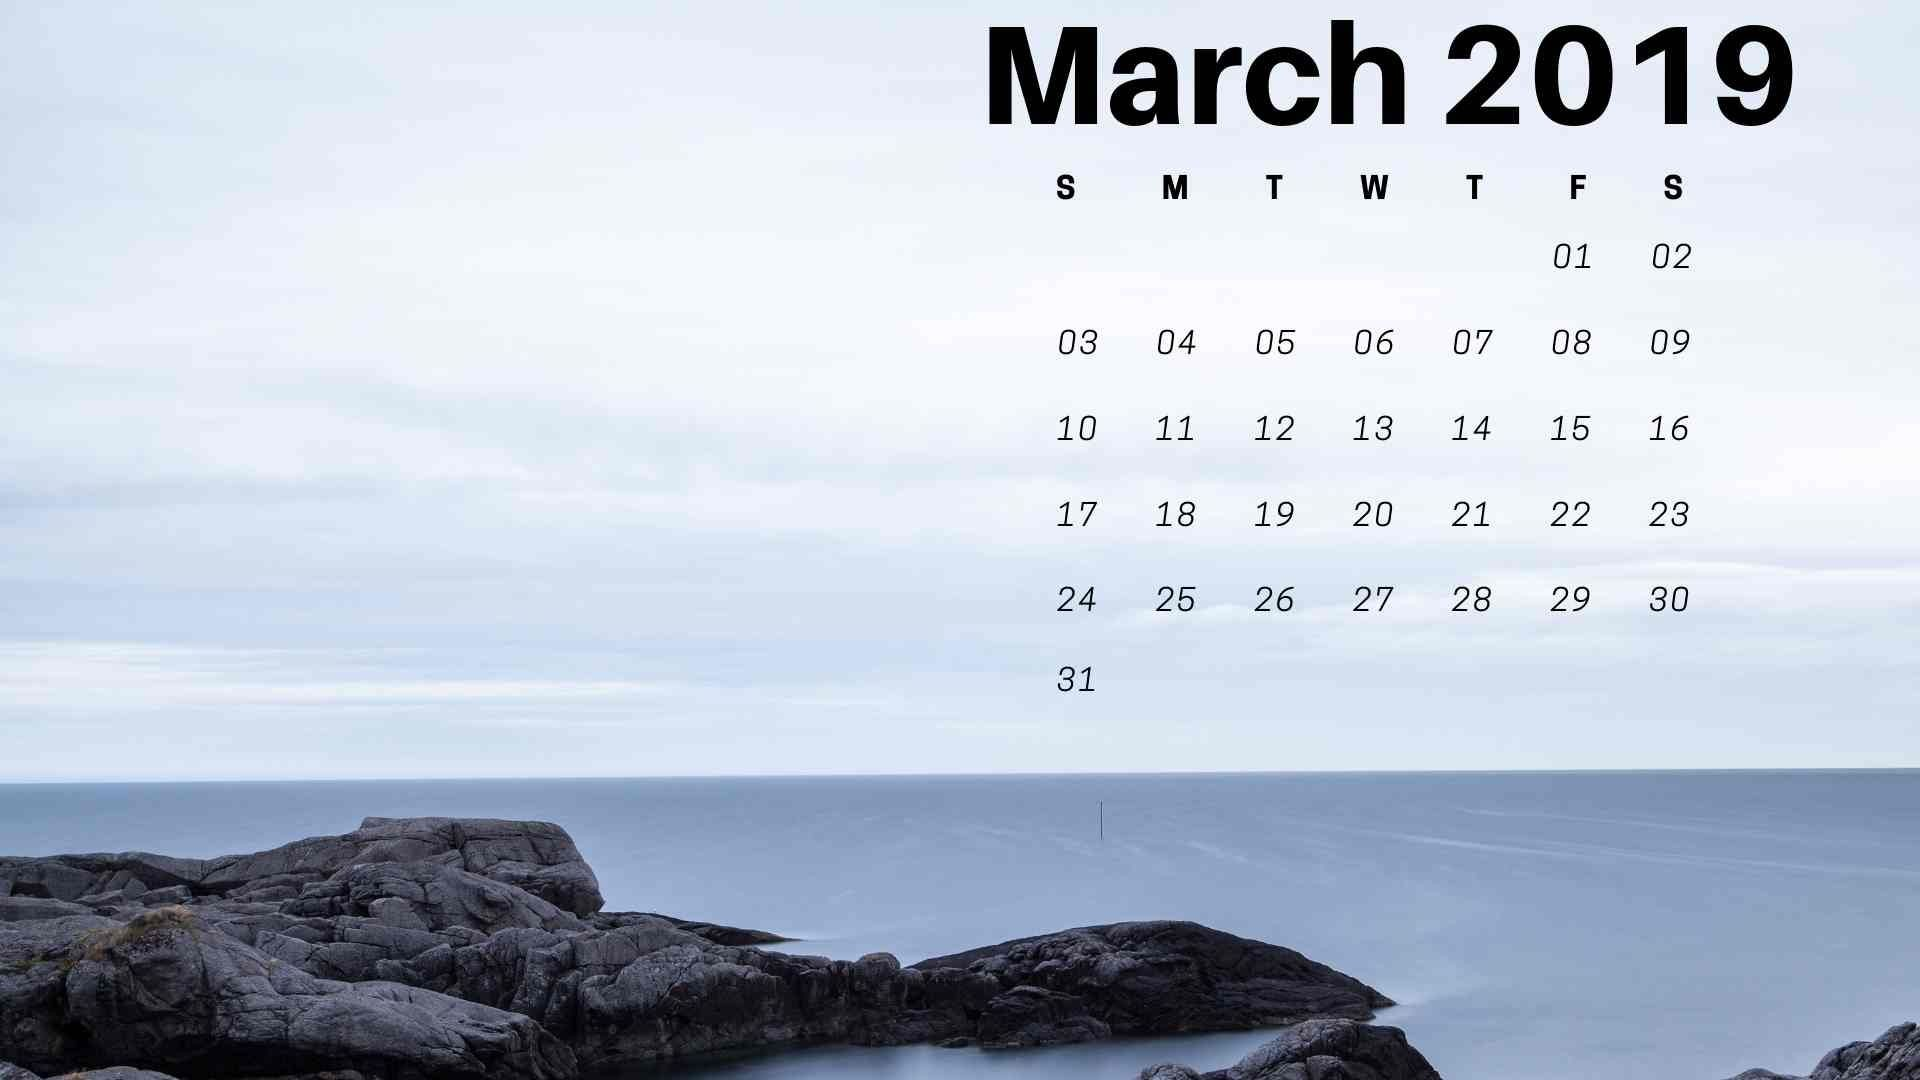 Empty Calendar March 2019 Más Recientemente Liberado March 2019 Calendar Wallpaper Desktop March Calendar Calenda2019 Of Empty Calendar March 2019 Más Recientemente Liberado March 2019 Calendar Wallpaper Desktop March Calendar Calenda2019